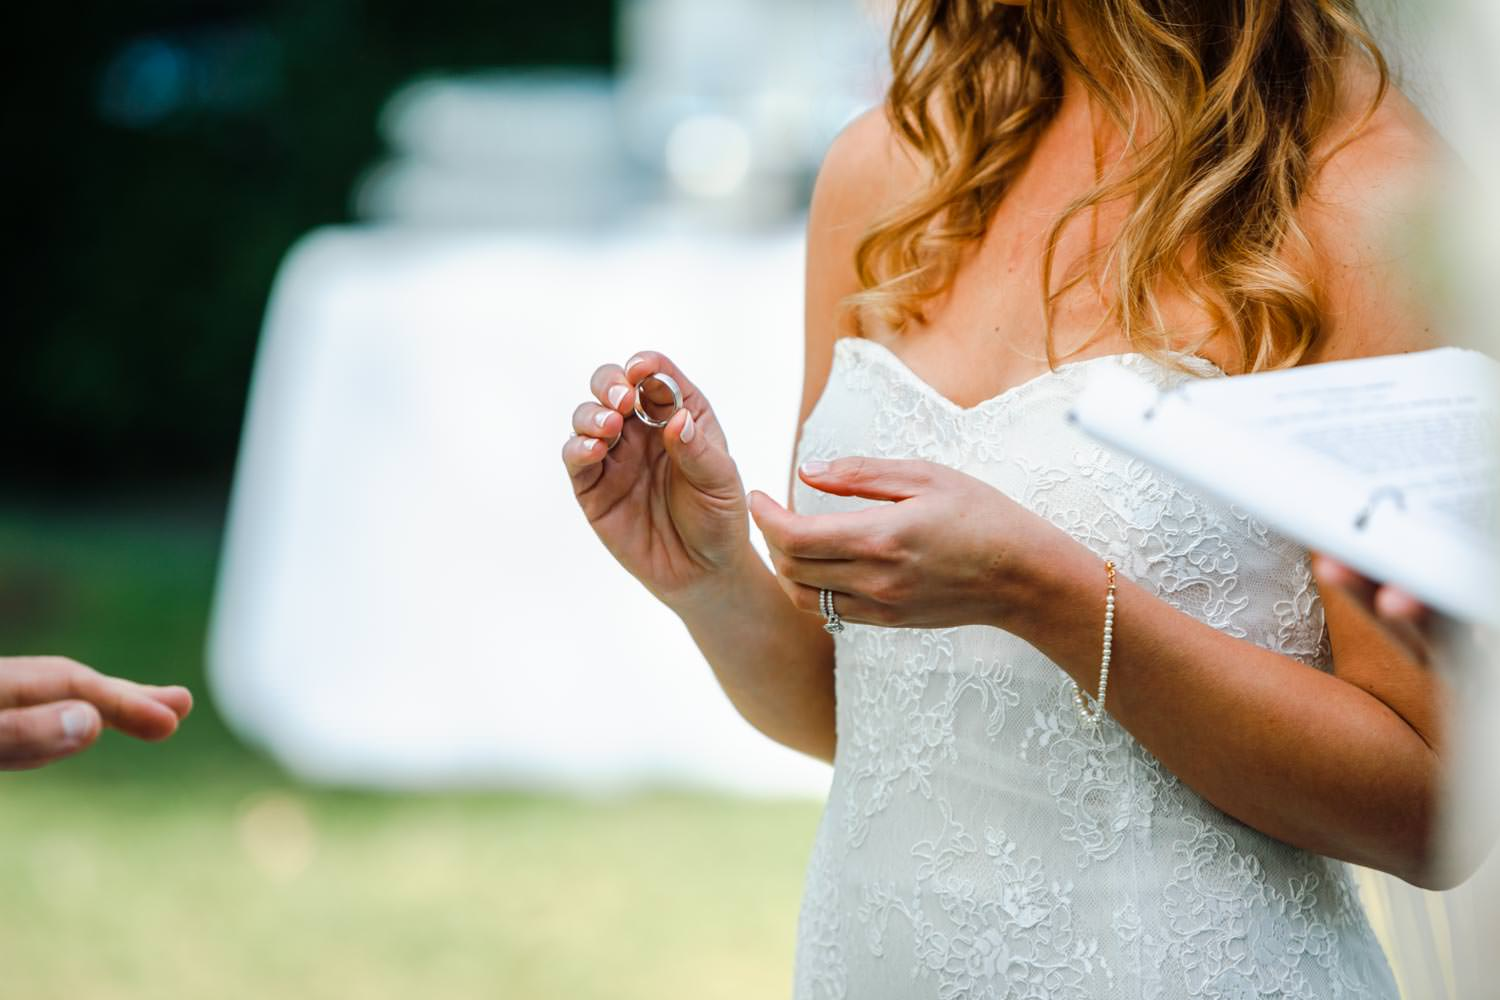 bride holds wedding ring for photographer at woodstock inn wedding in vermont